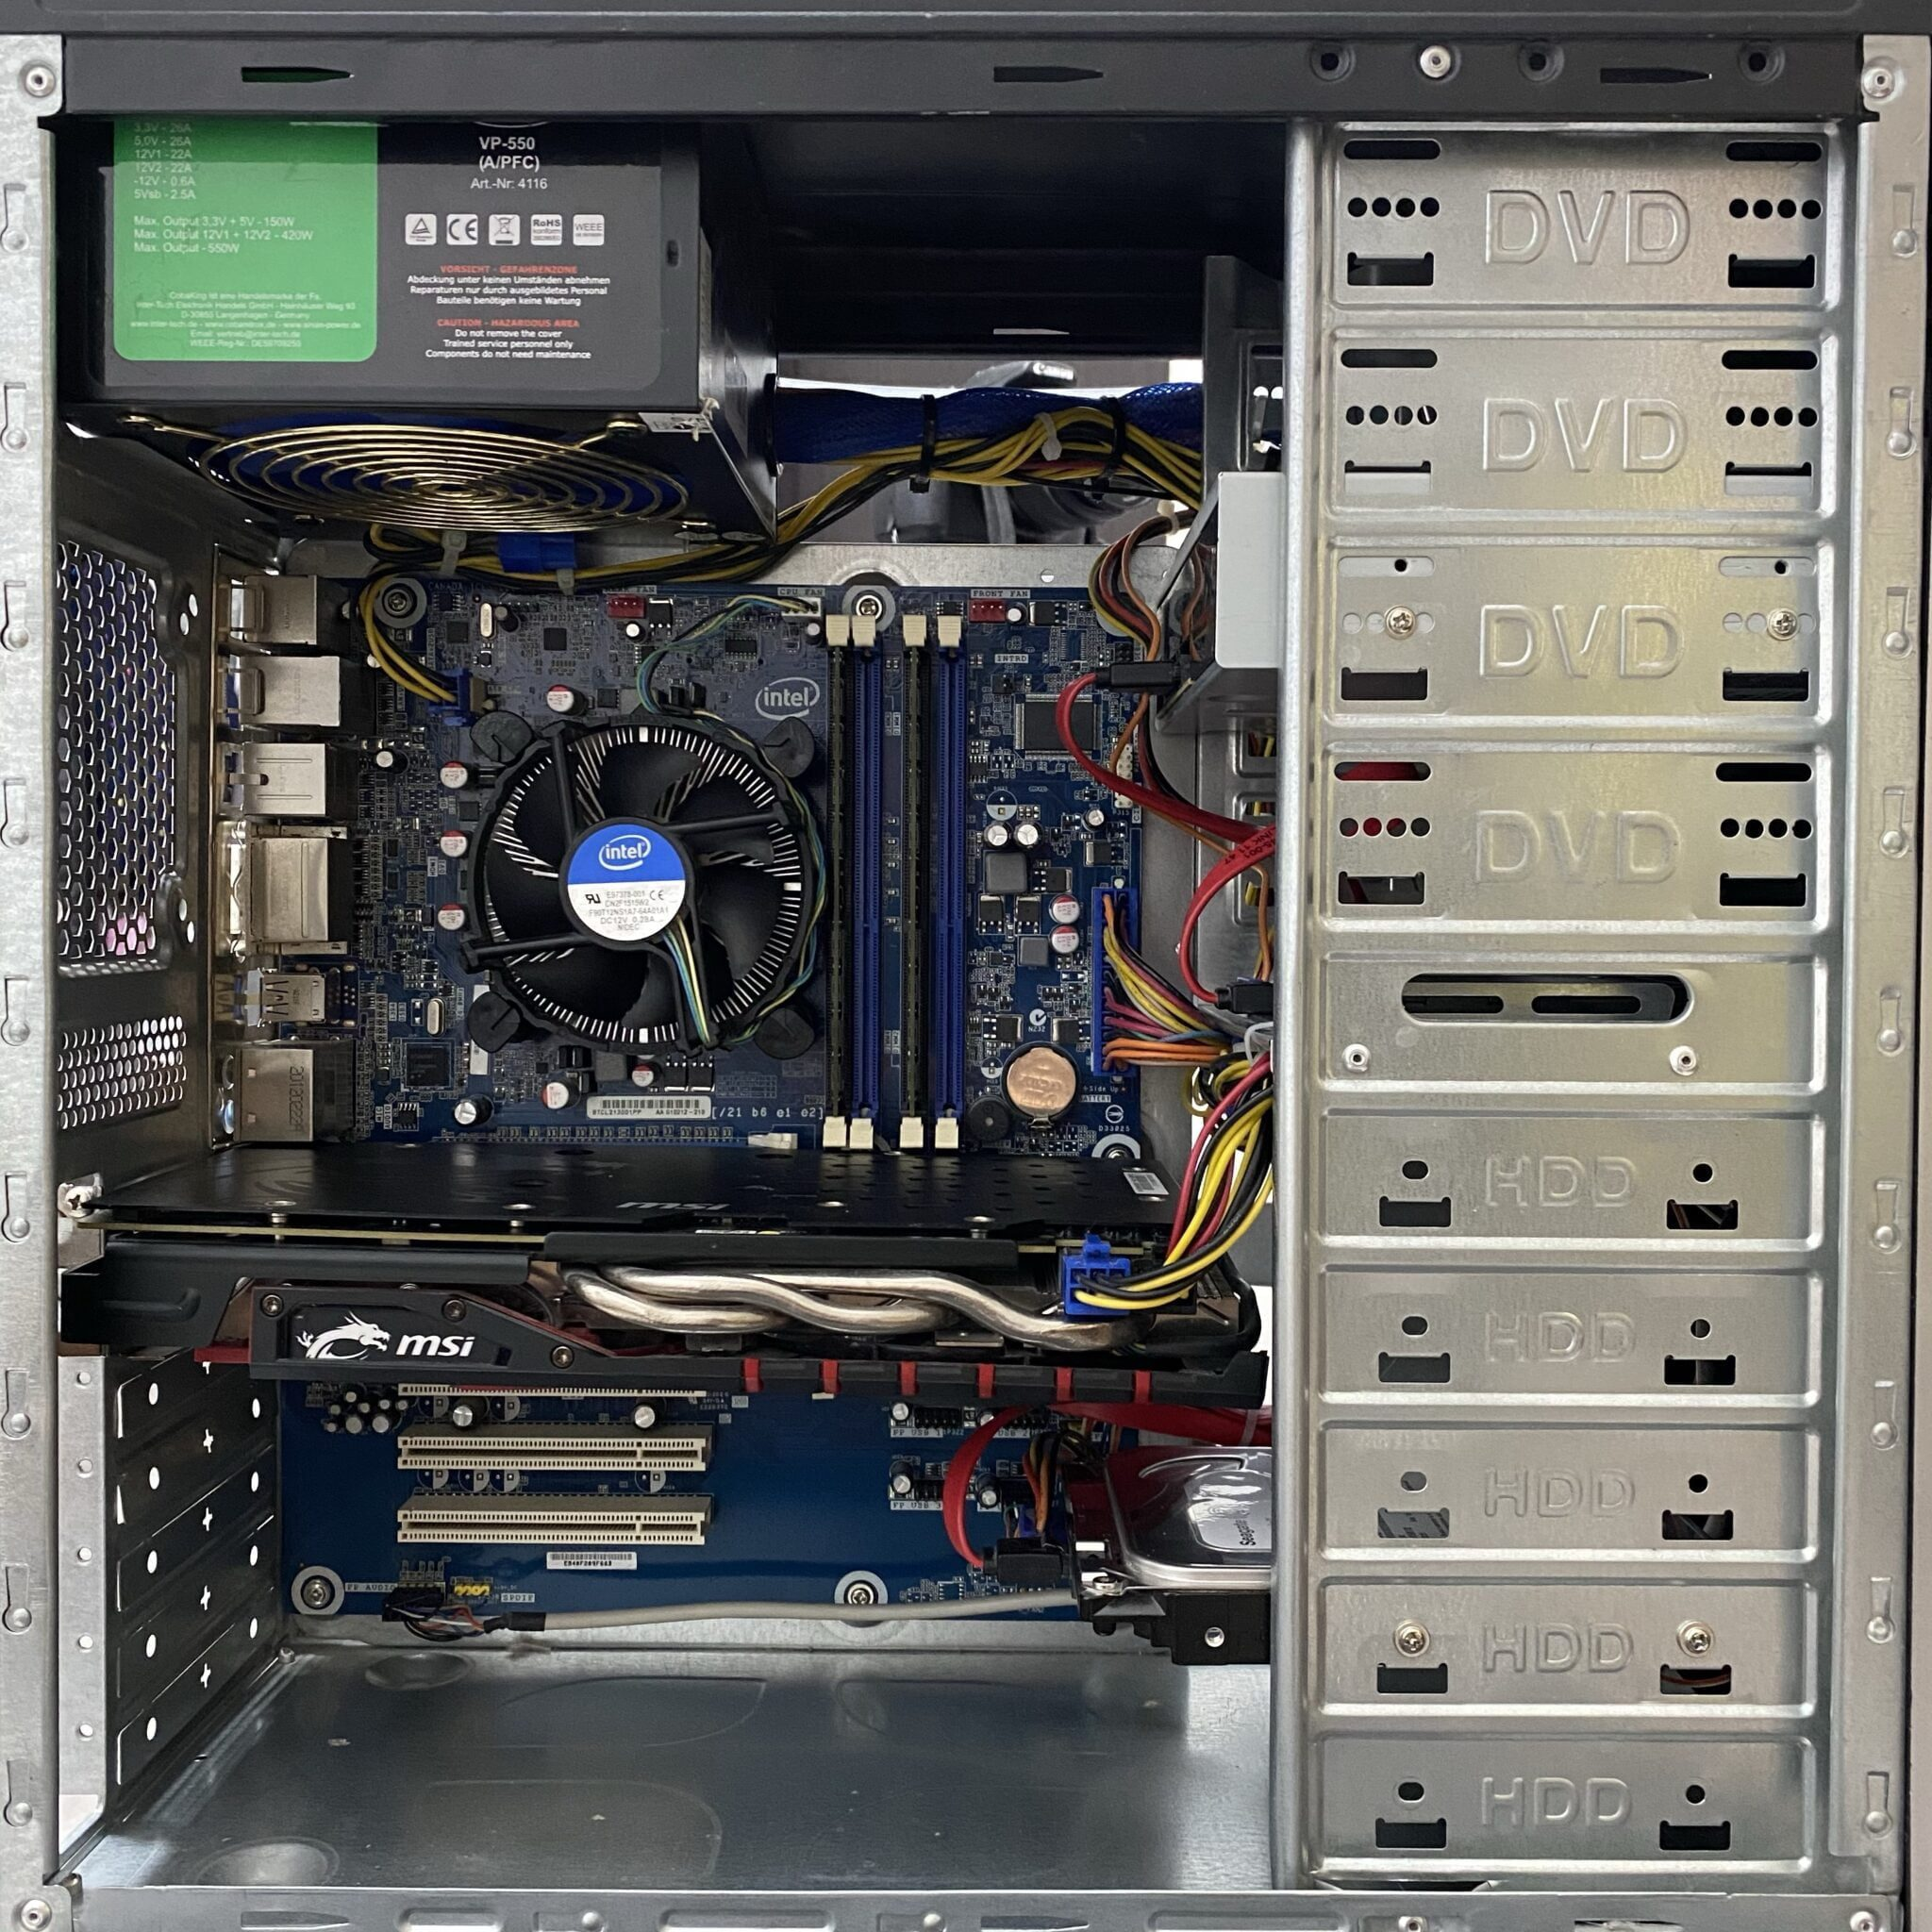 Cable management PC img 0001 scaled